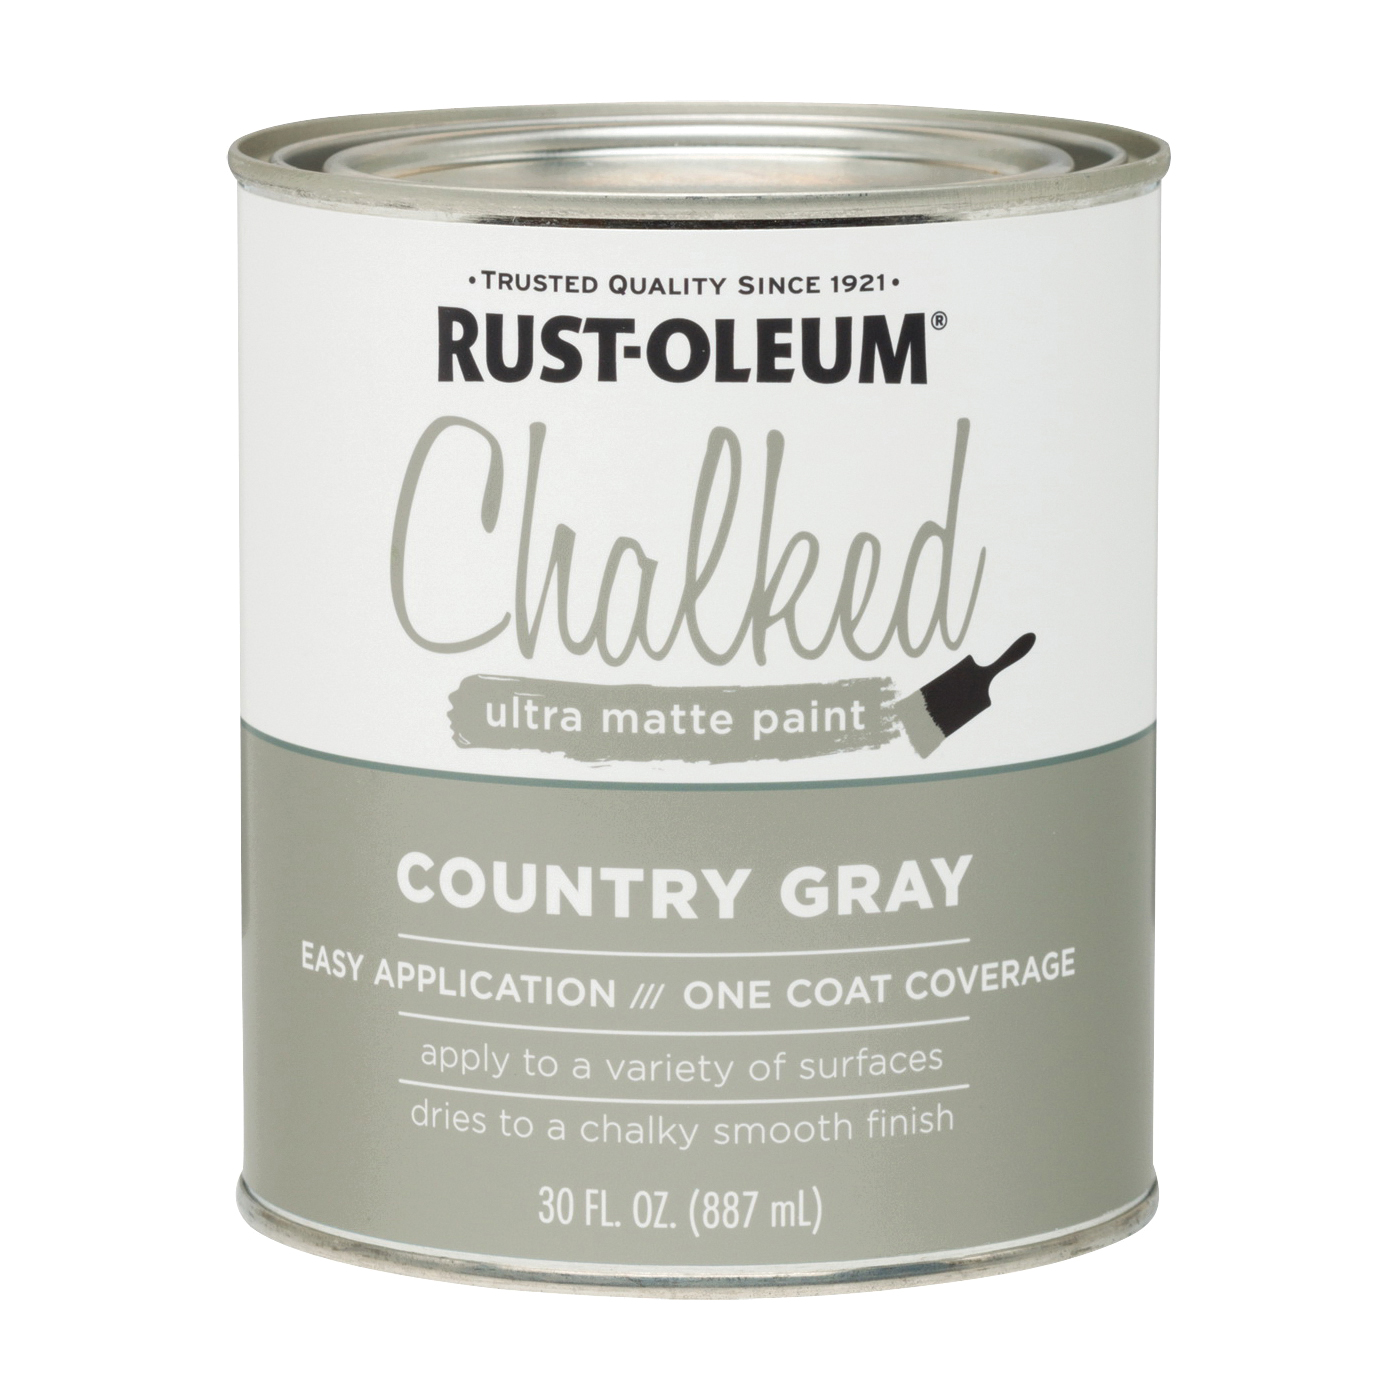 Picture of RUST-OLEUM Chalked 285141 Chalked Paint, Ultra Matte, Country Gray, 30 oz, Pint